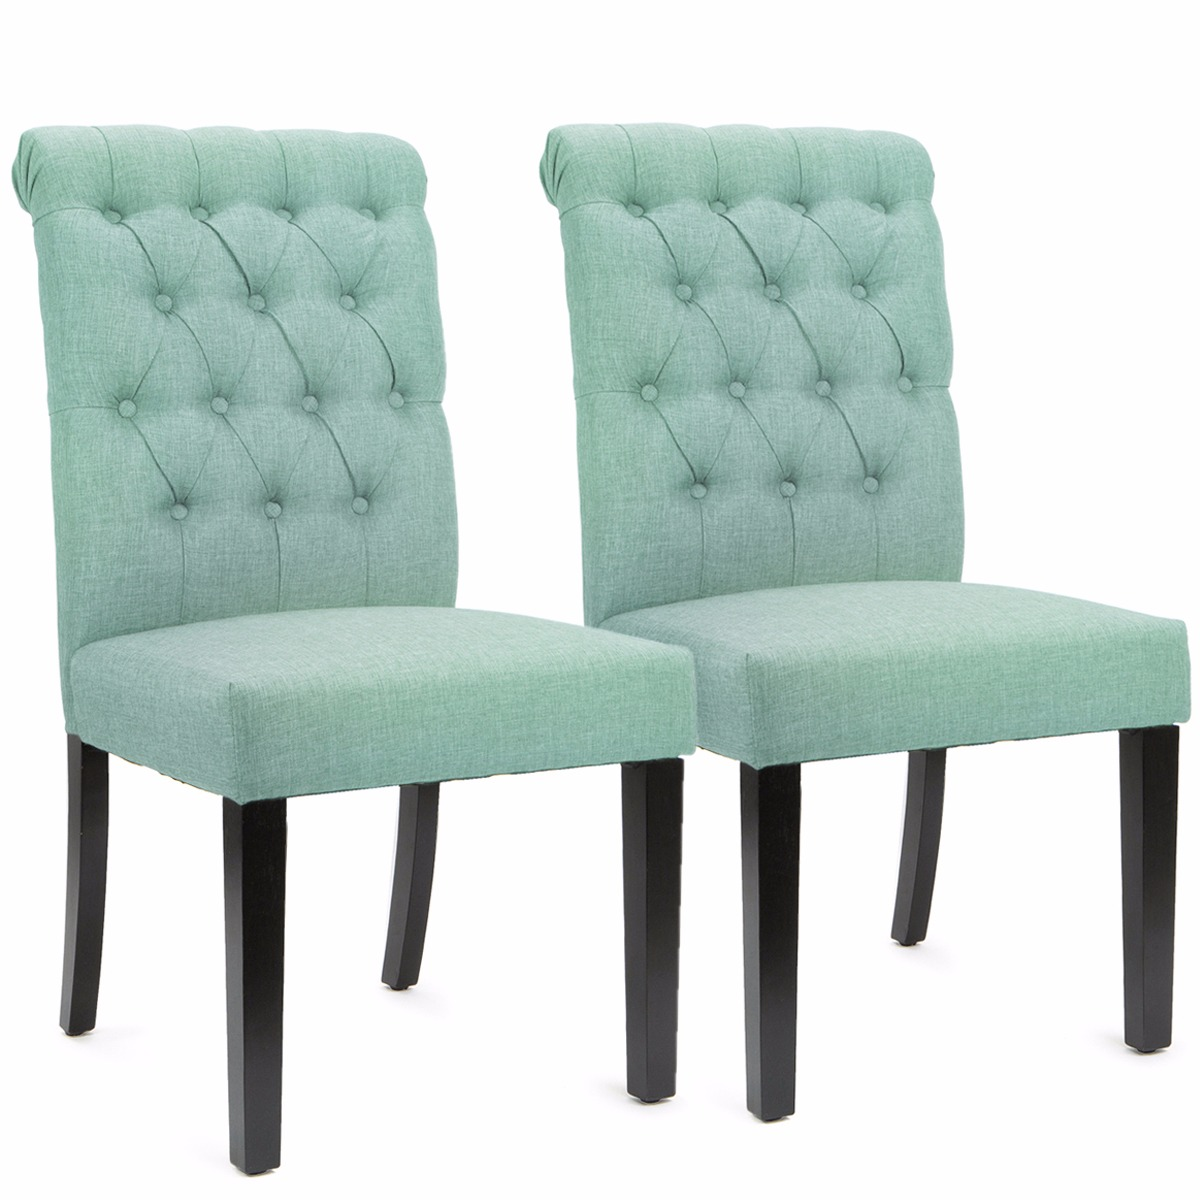 Sef of 2 Elegant Tufted Padded Victorian Dining Chair Set, Sea Mist